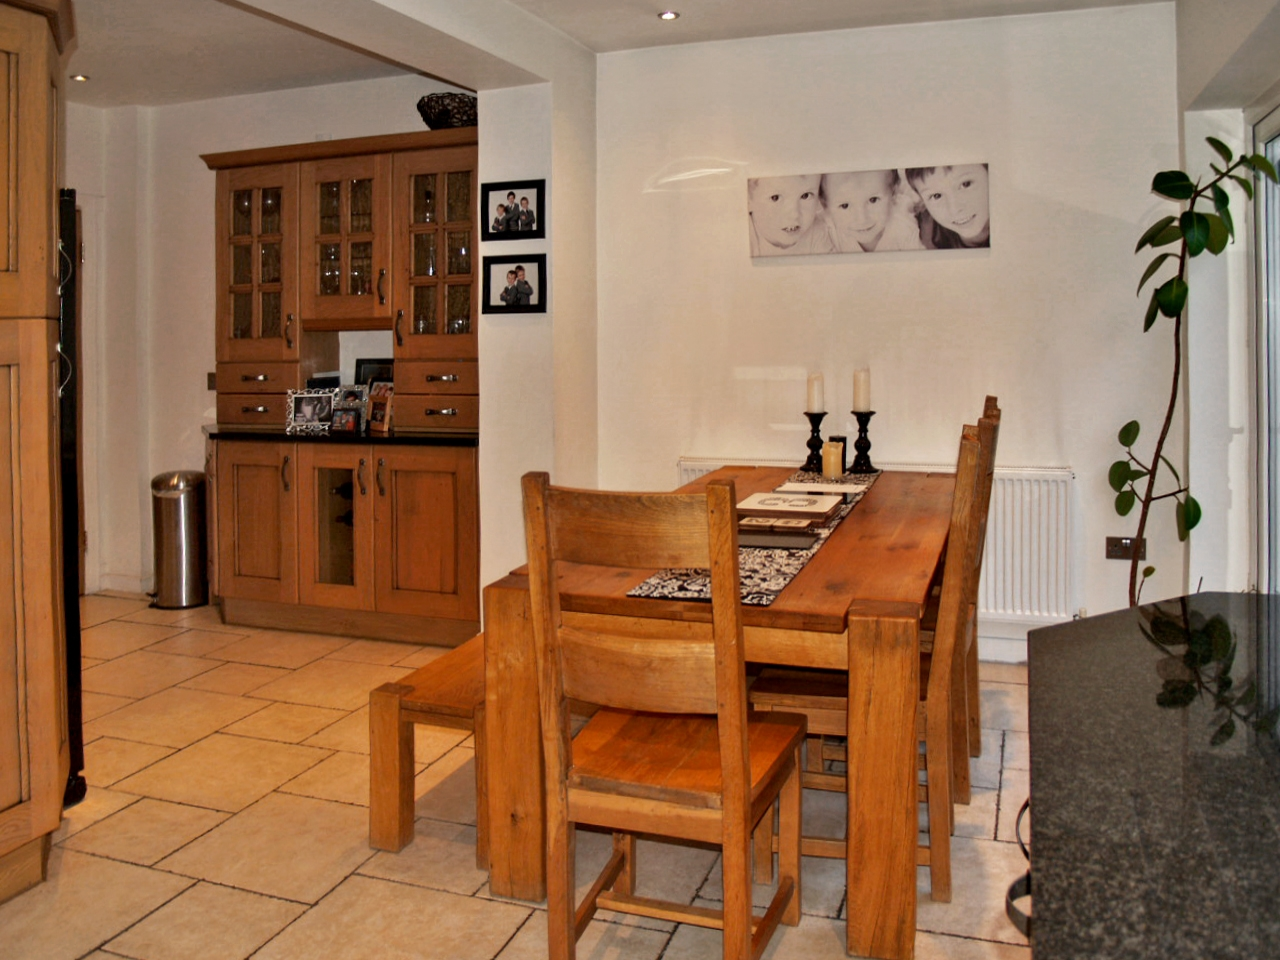 5 bedroom semi detached house SSTC in Solihull - photograph 7.